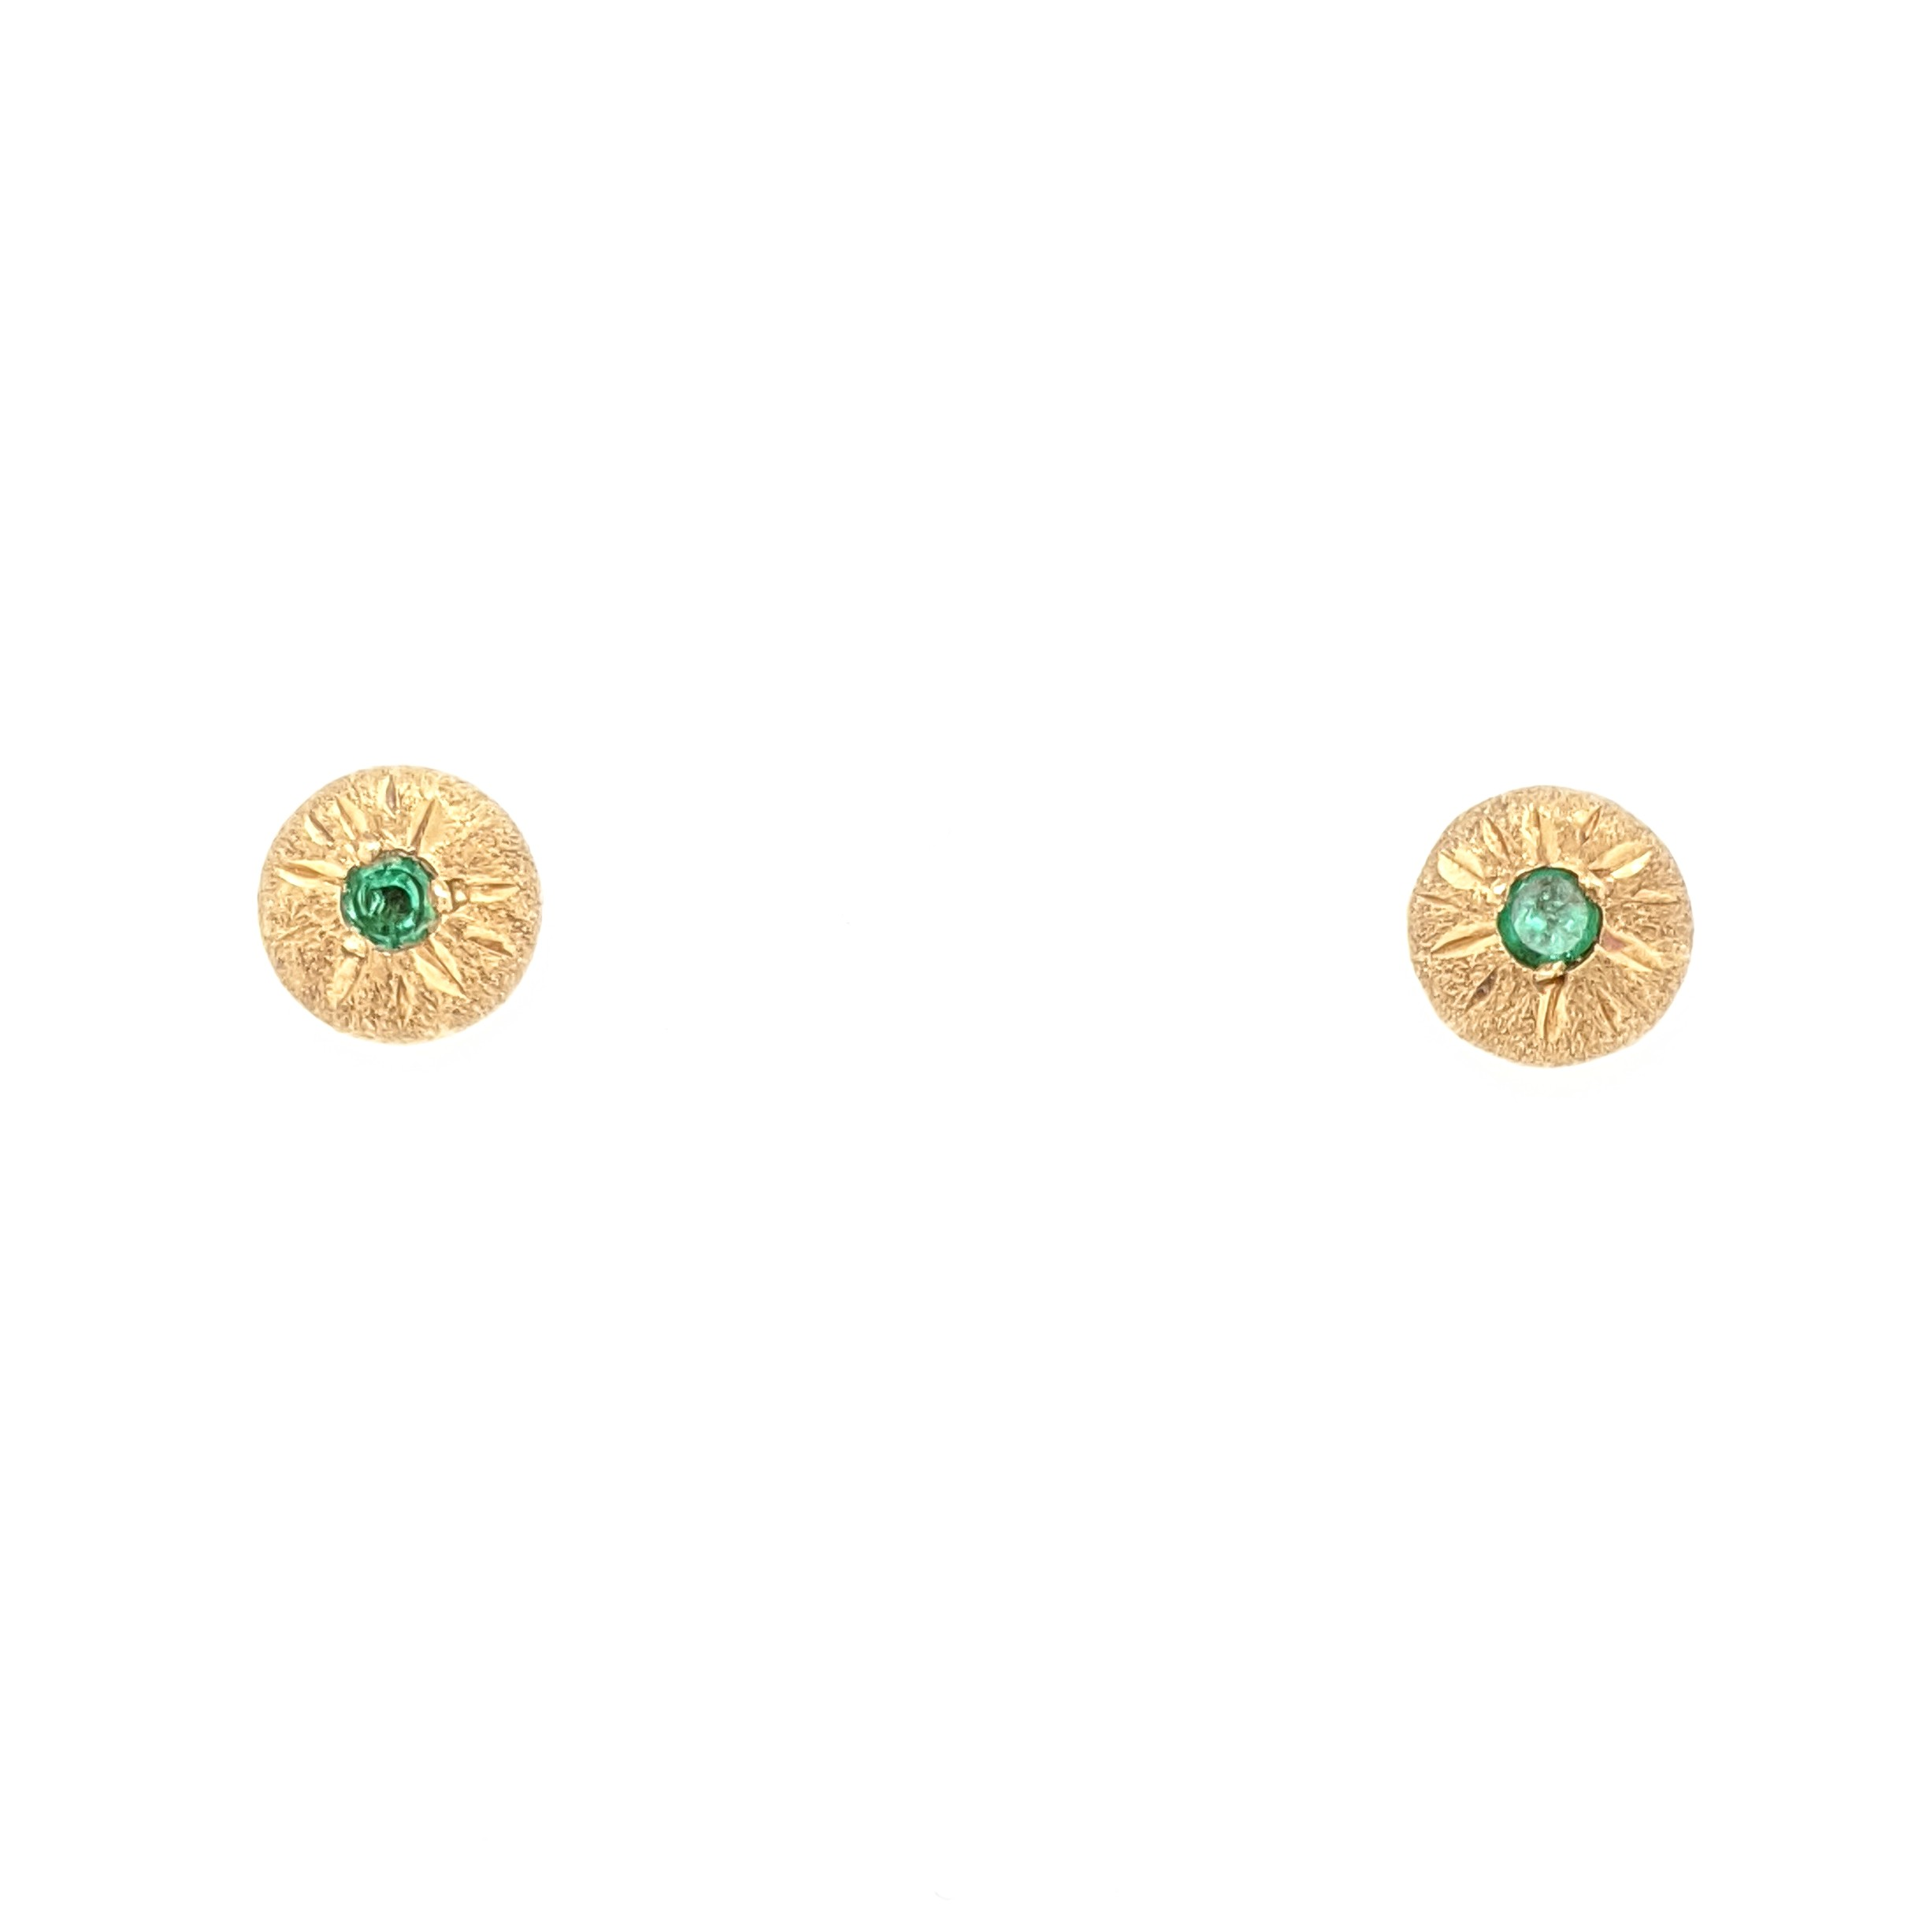 Textured Emerald Stud Earrings